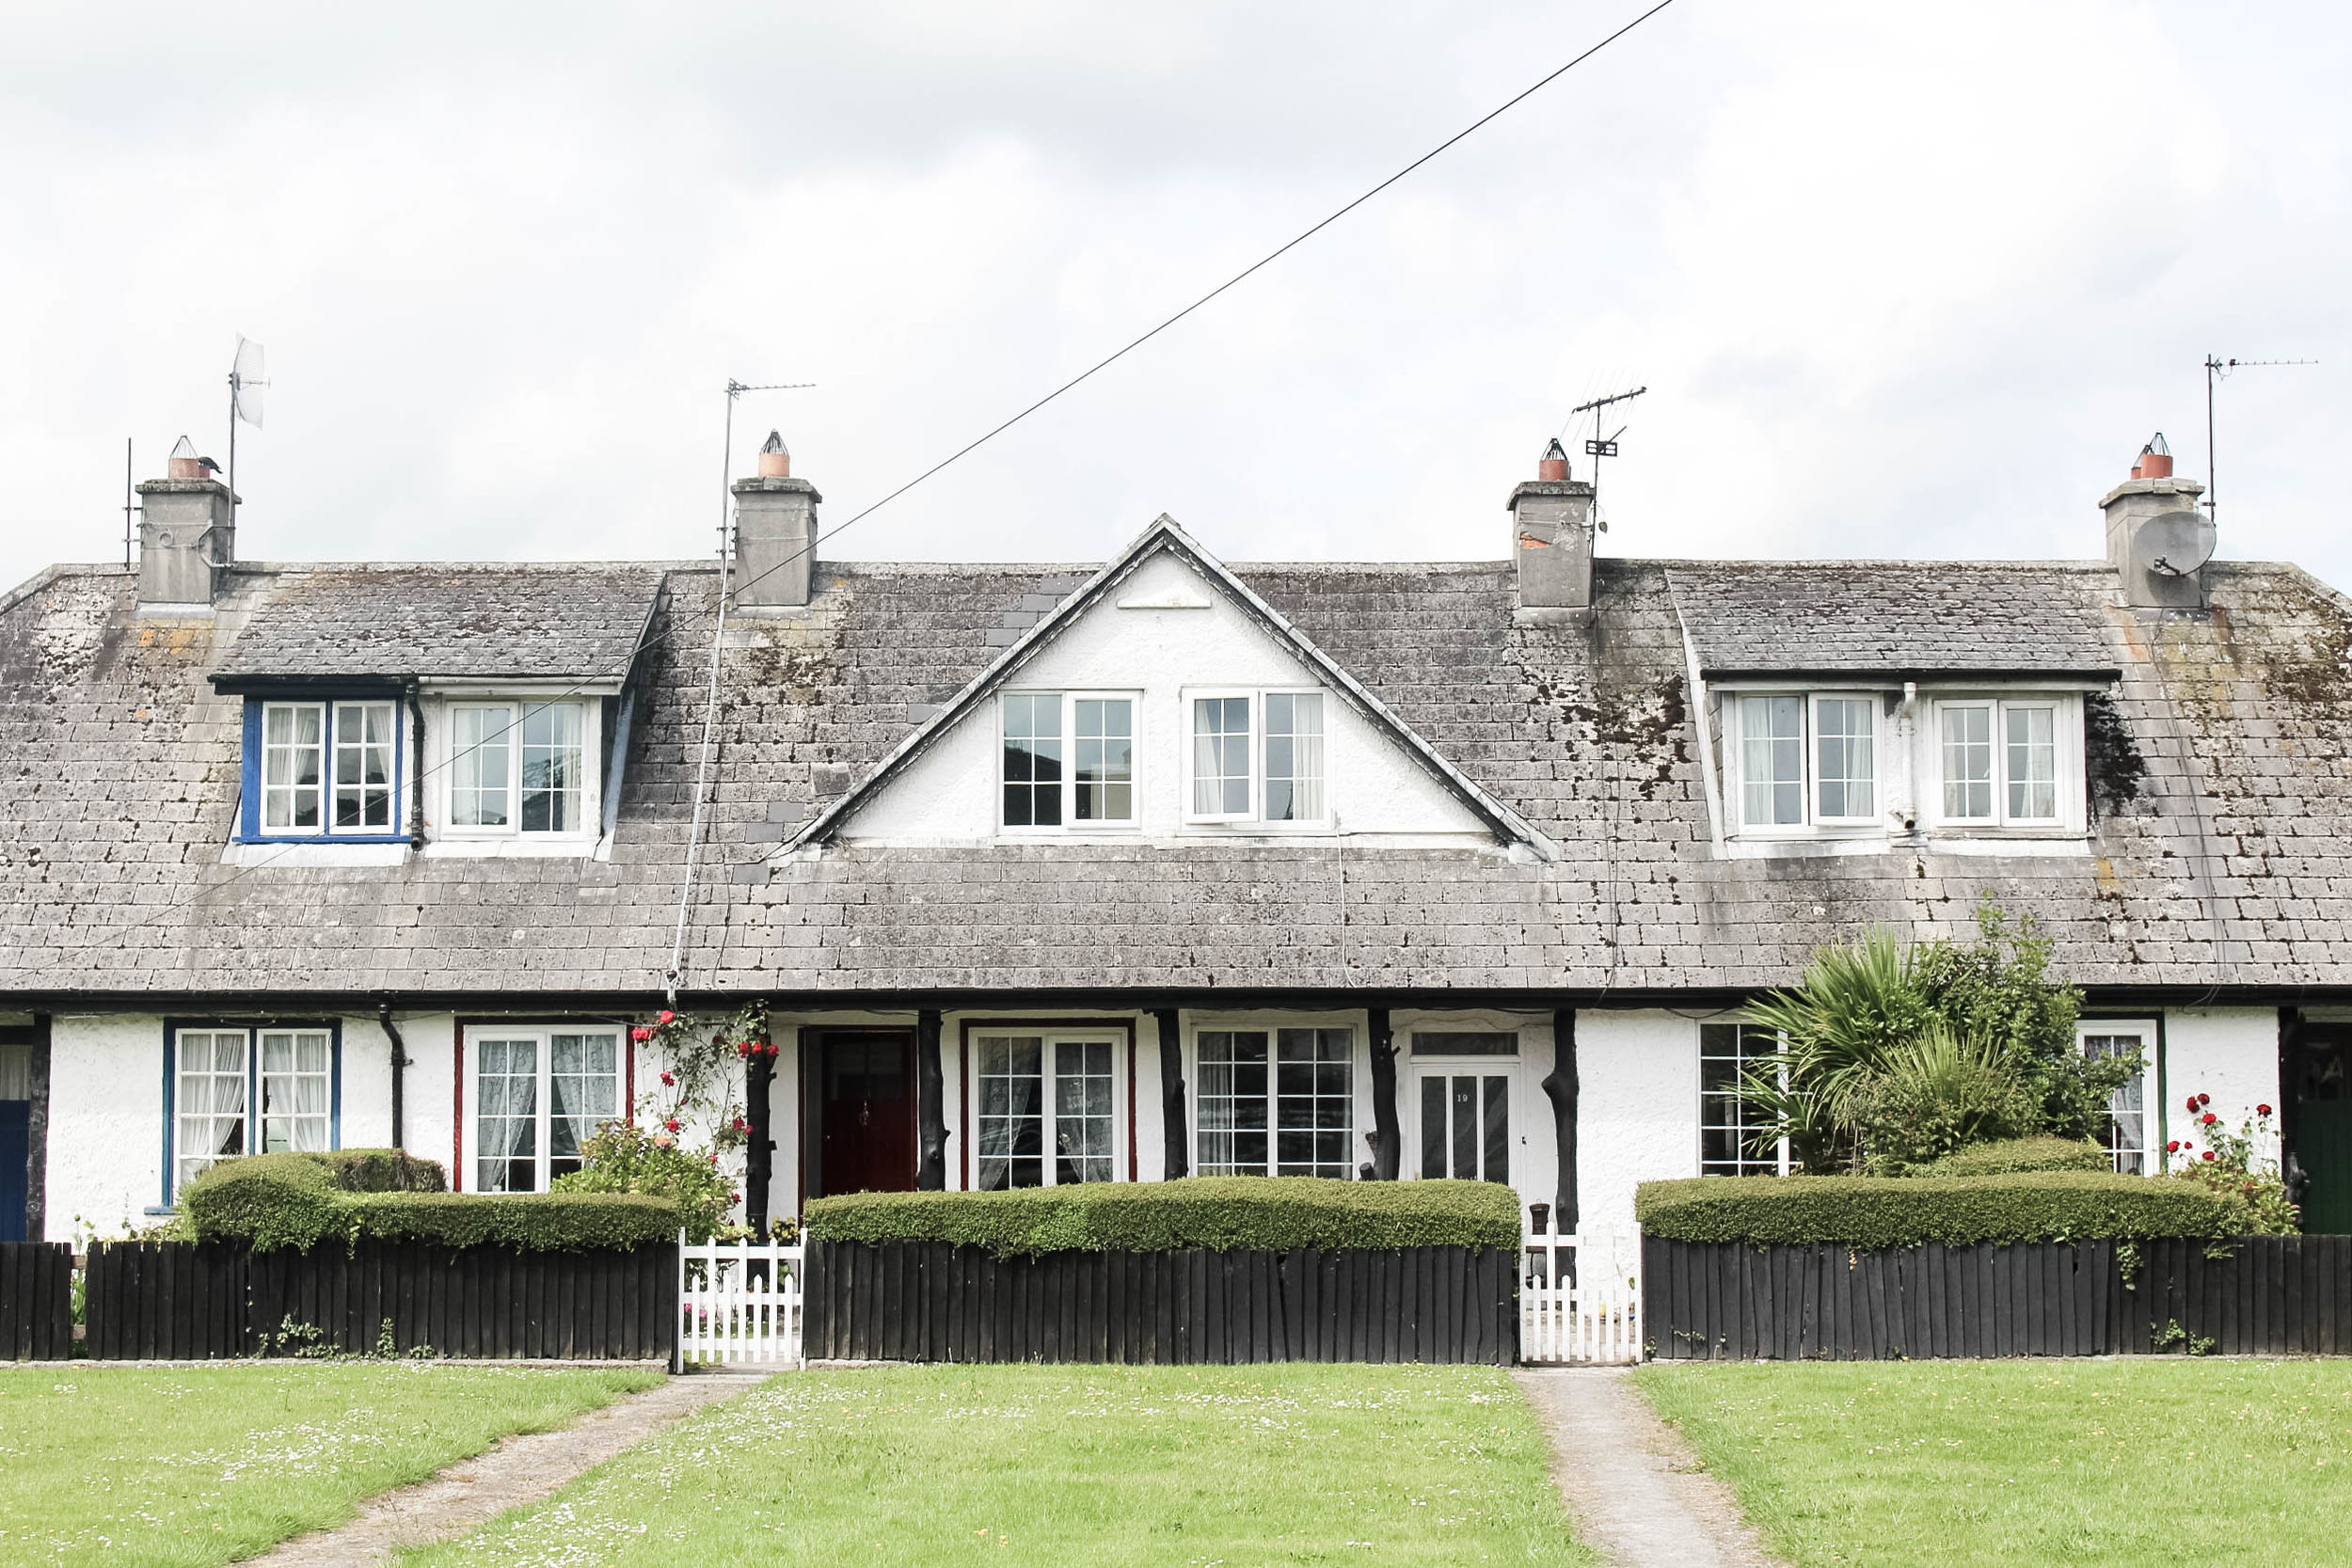 Things to do in Ireland - The village of Adare in County Limerick - True North Paper Blog